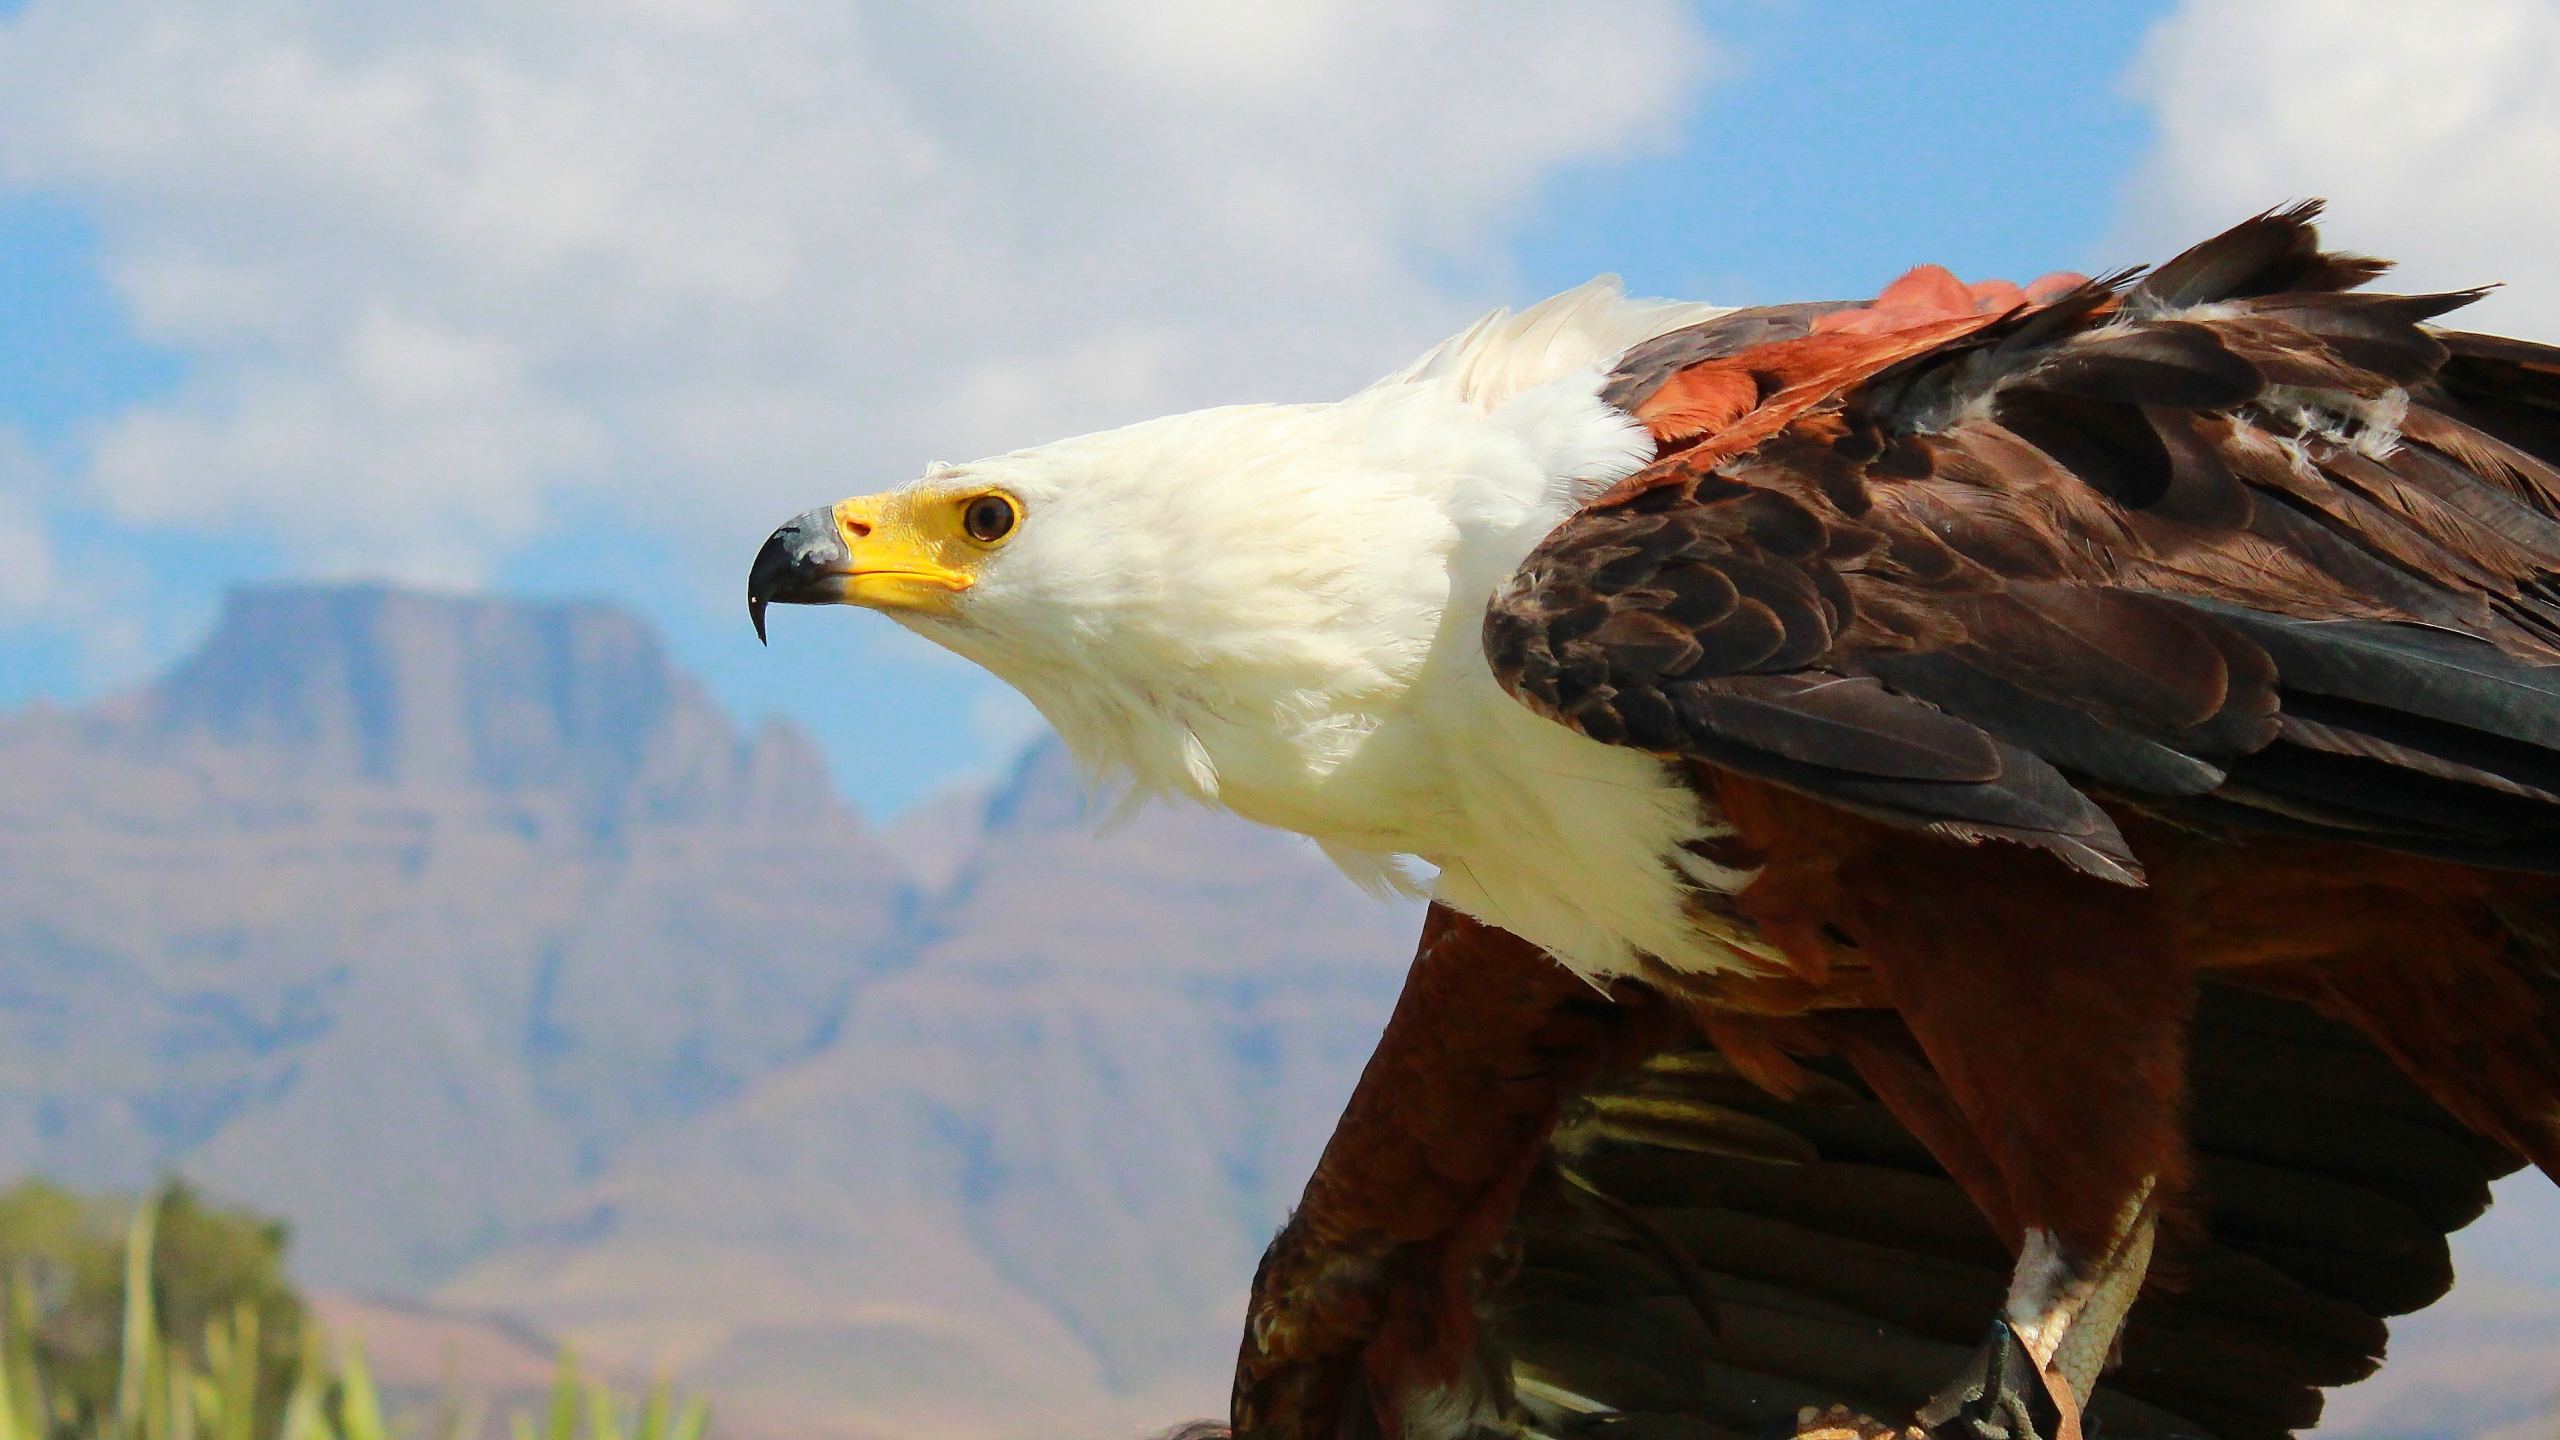 Download 2560x1440 Wallpaper Eagle, Bird, Feathers, Predator, Dual